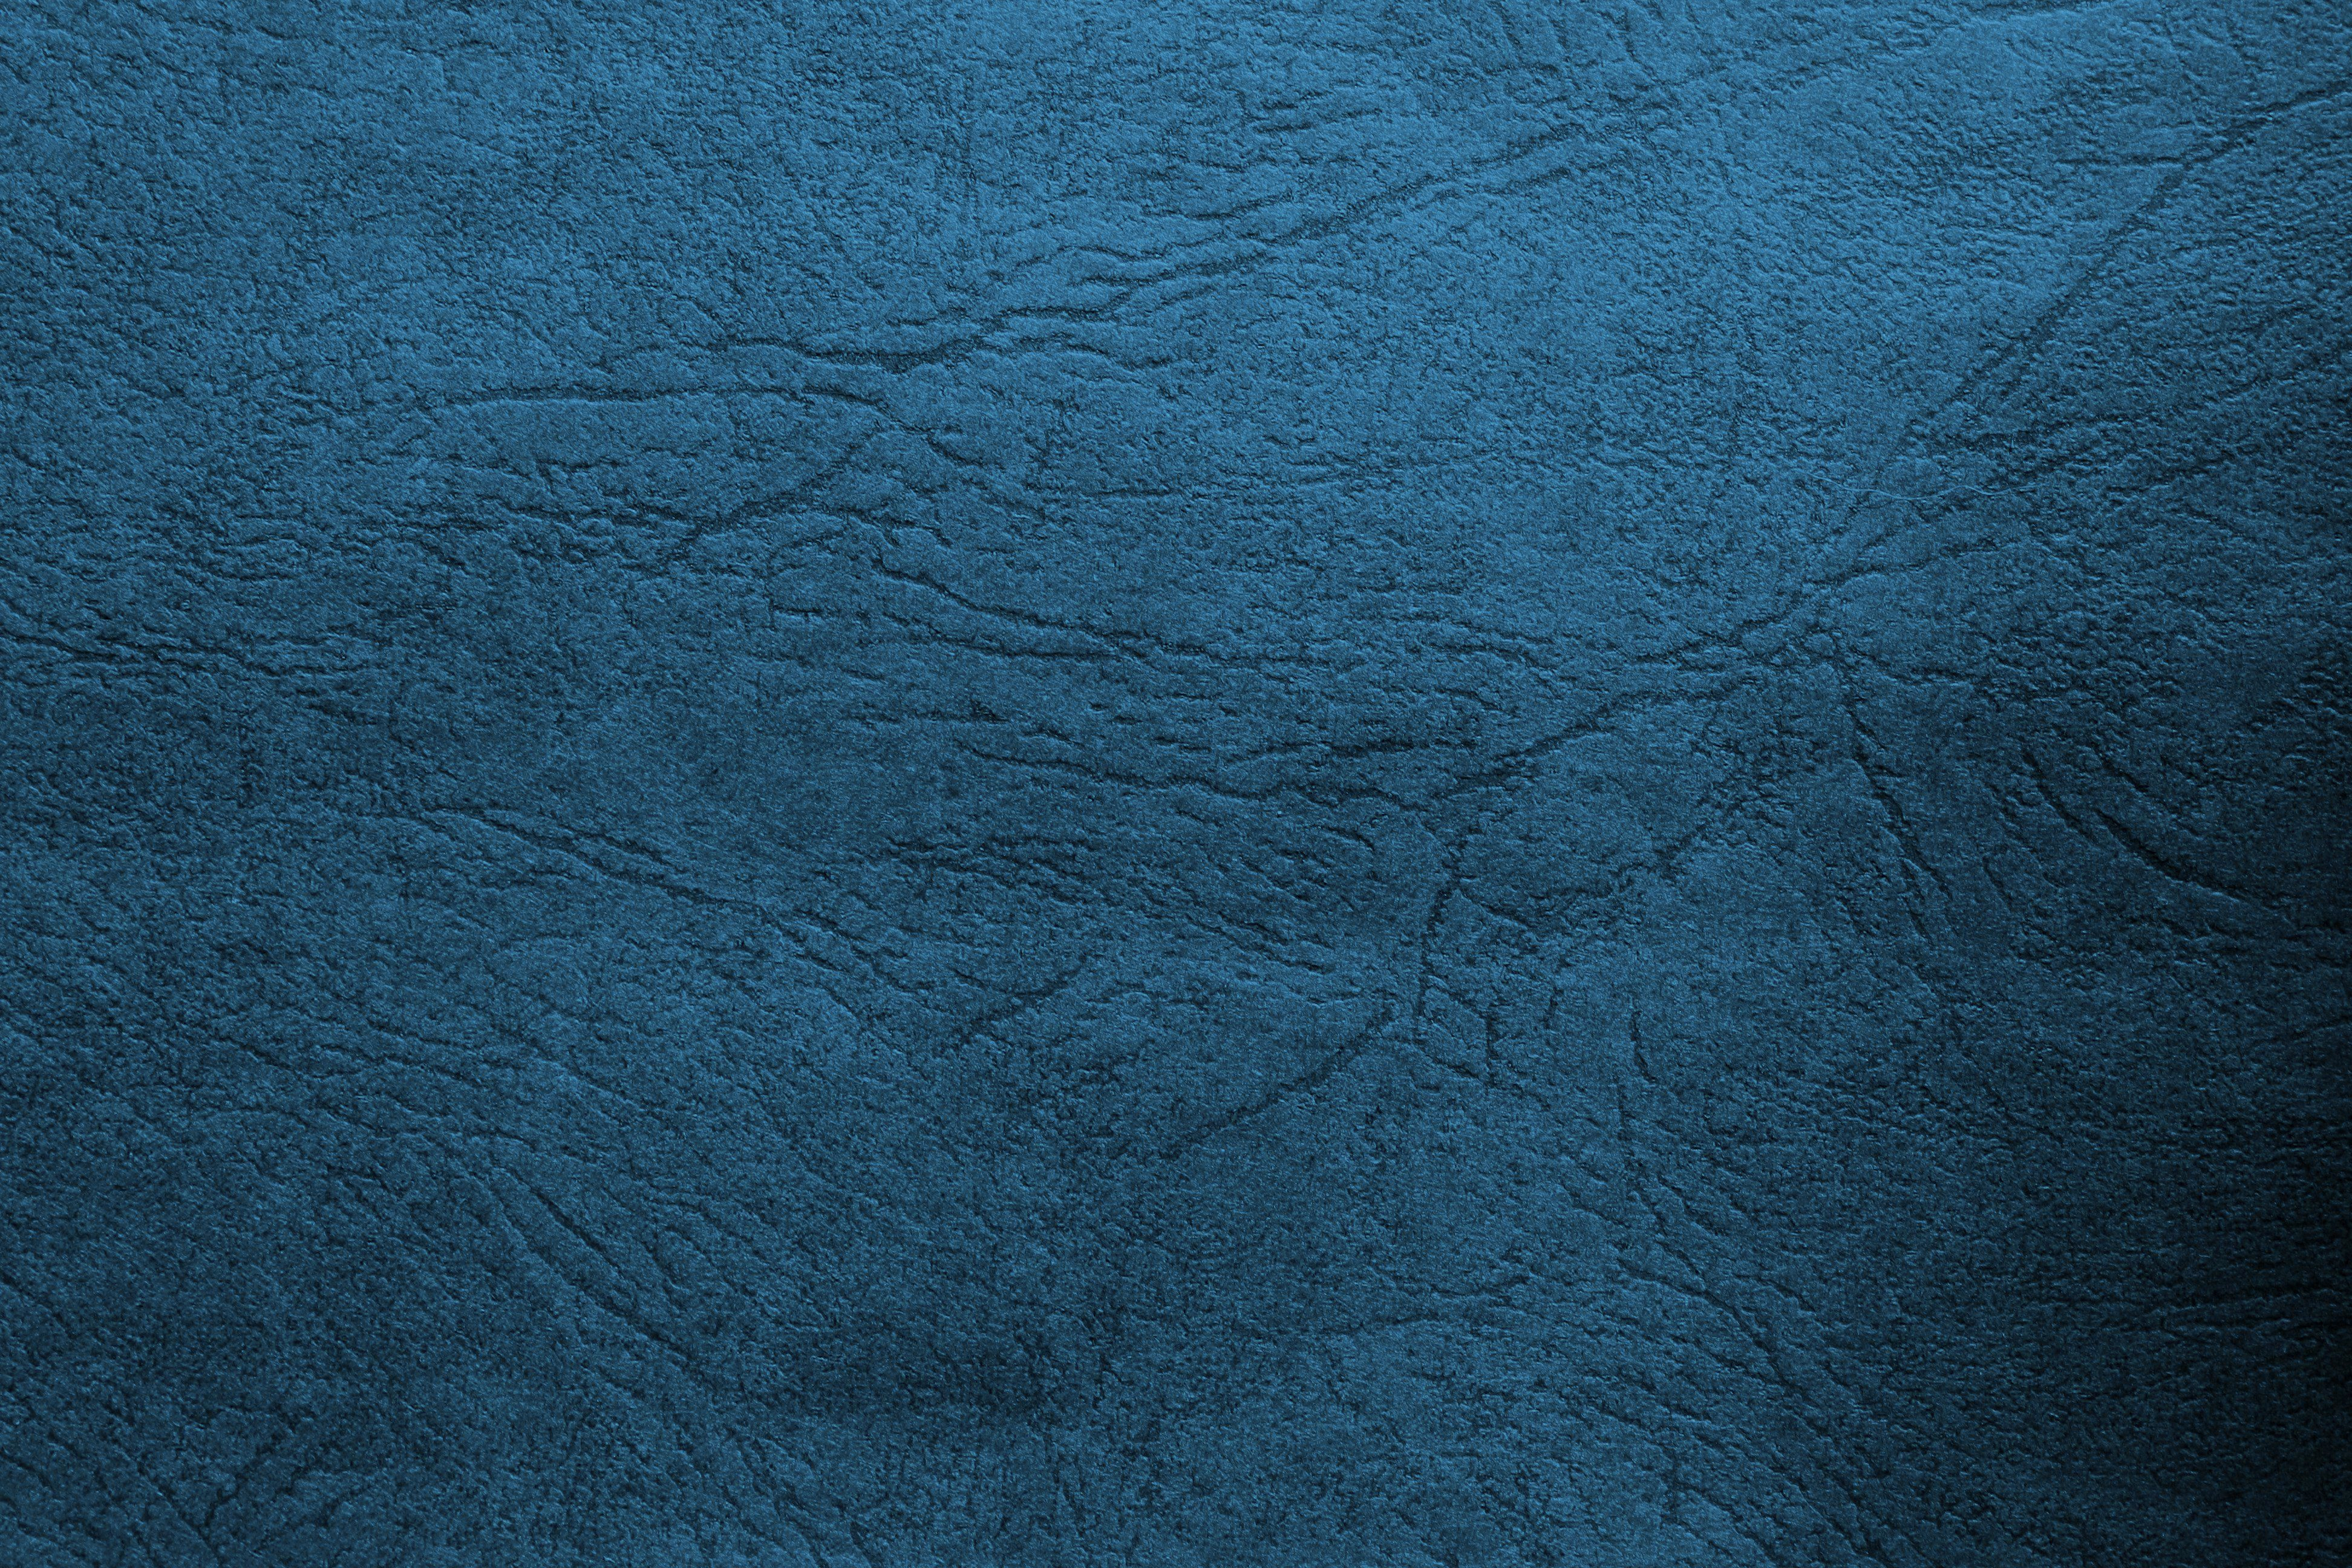 Light Blue Leather Texture Picture Free Graph Public Wallpaper Leather Texture Blue Texture Blue Wallpapers